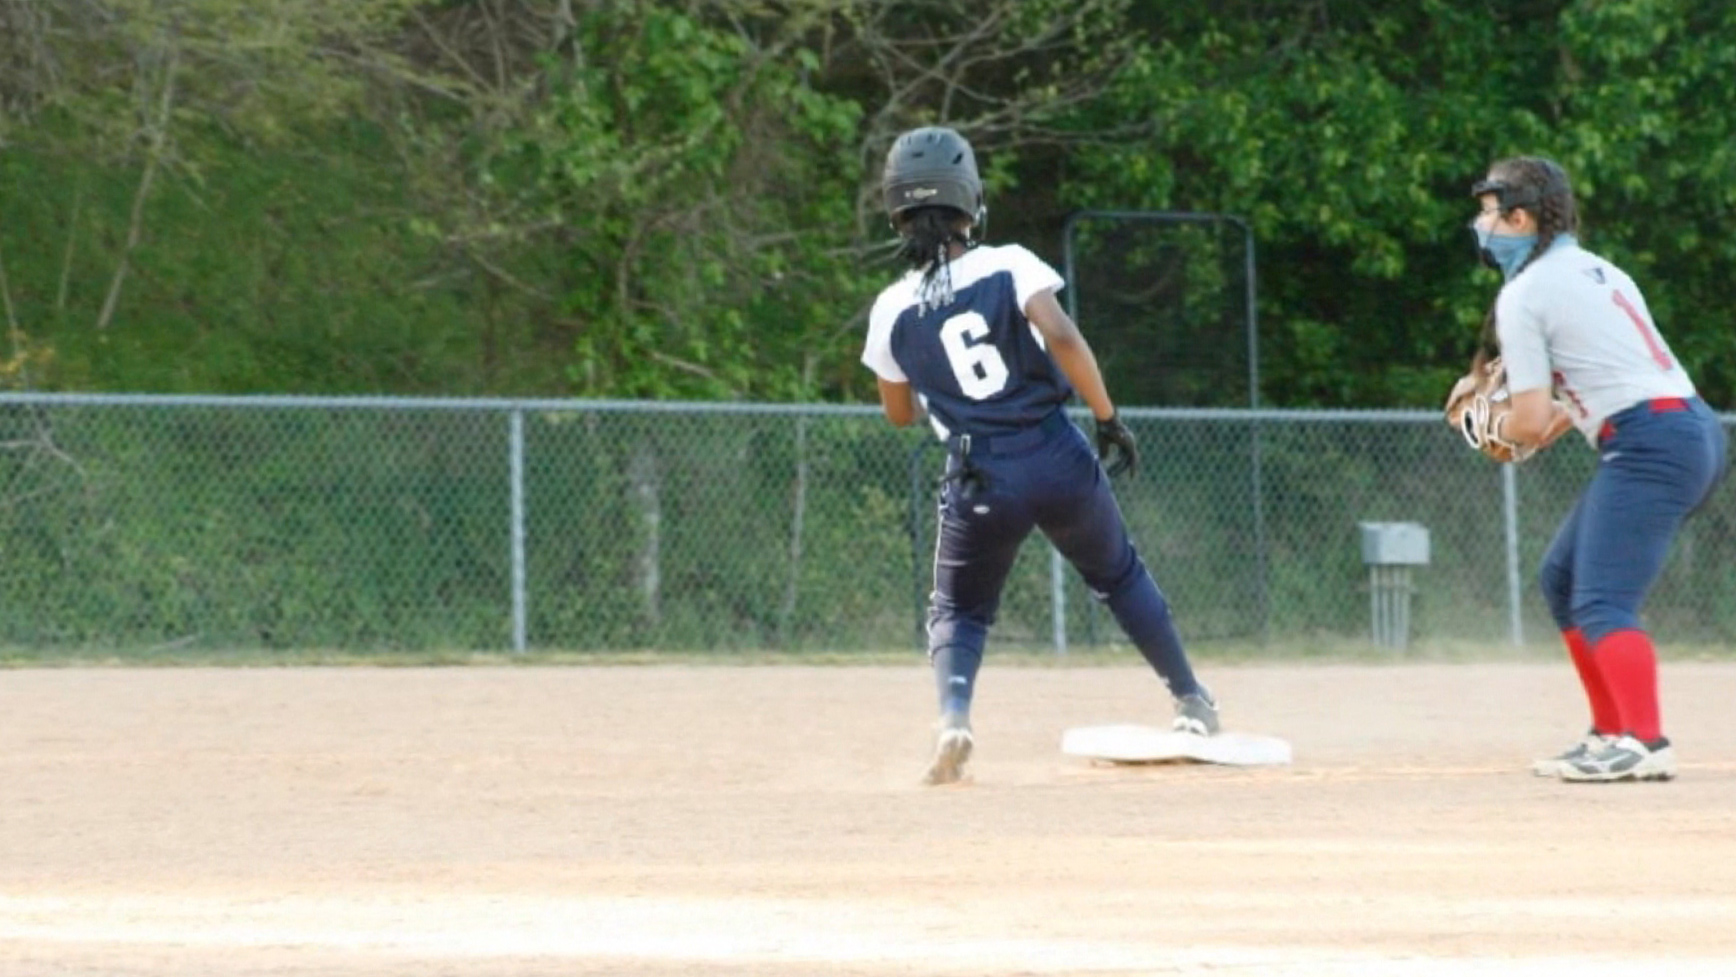 A Black softball player says she was forced to cut off her hair beads at a game. Her family wants to change the rule they say is discriminatory